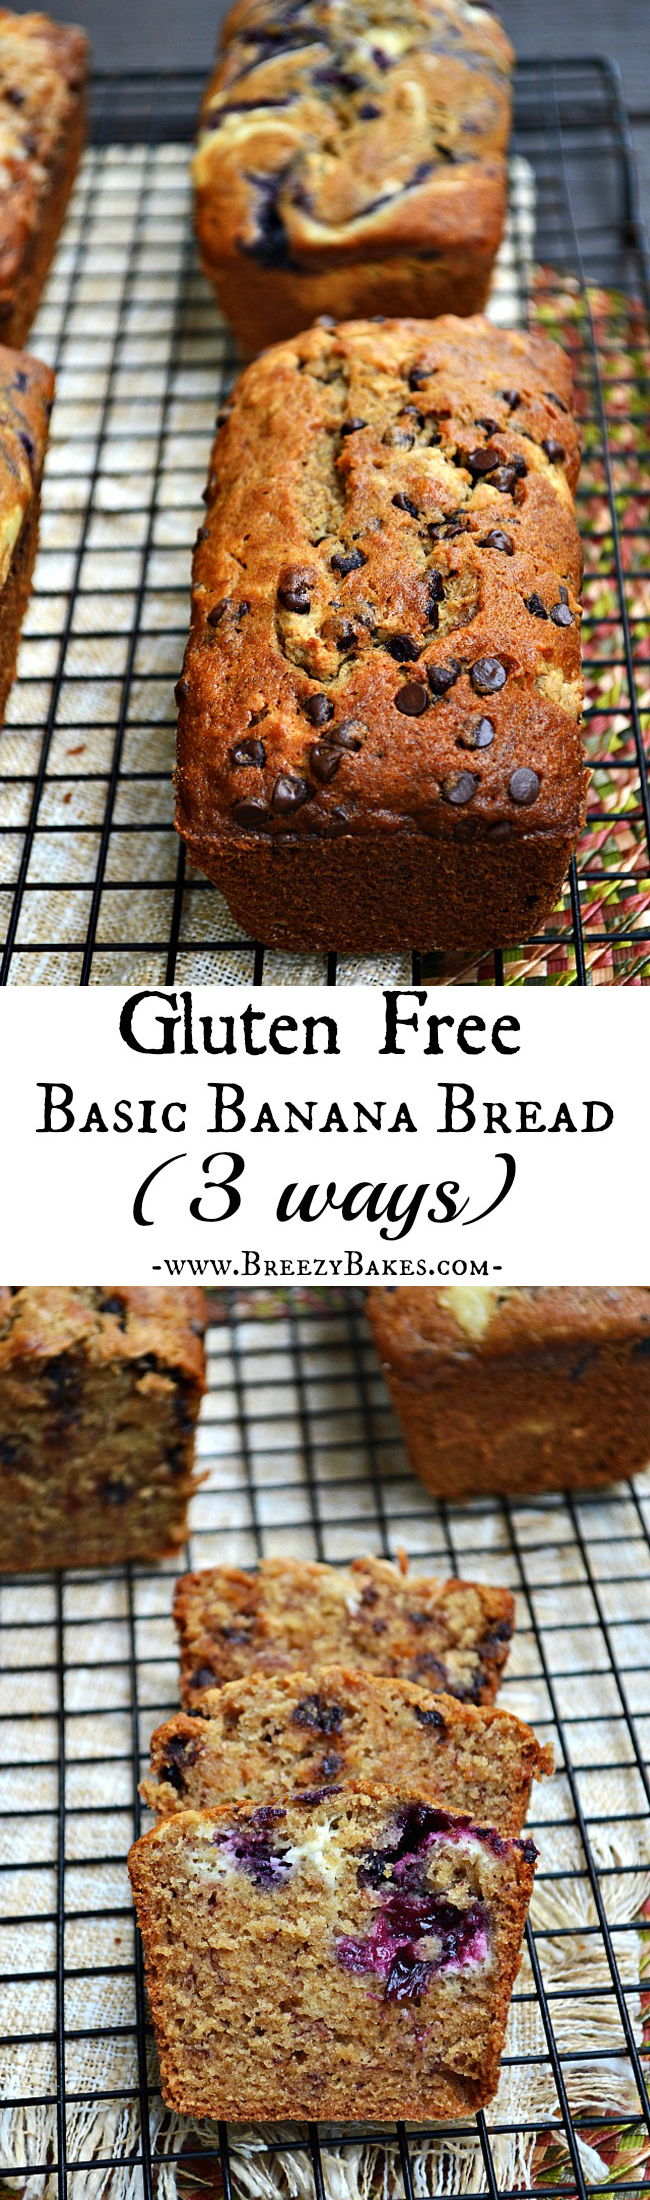 Bake up your favorite flavor of banana bread with this easily adaptable Gluten Free Basic Banana Bread: Three Ways recipe. Make up your own mix-in variation or choose from Berry Cheesecake, Peanut Butter Cup, and Samoa.